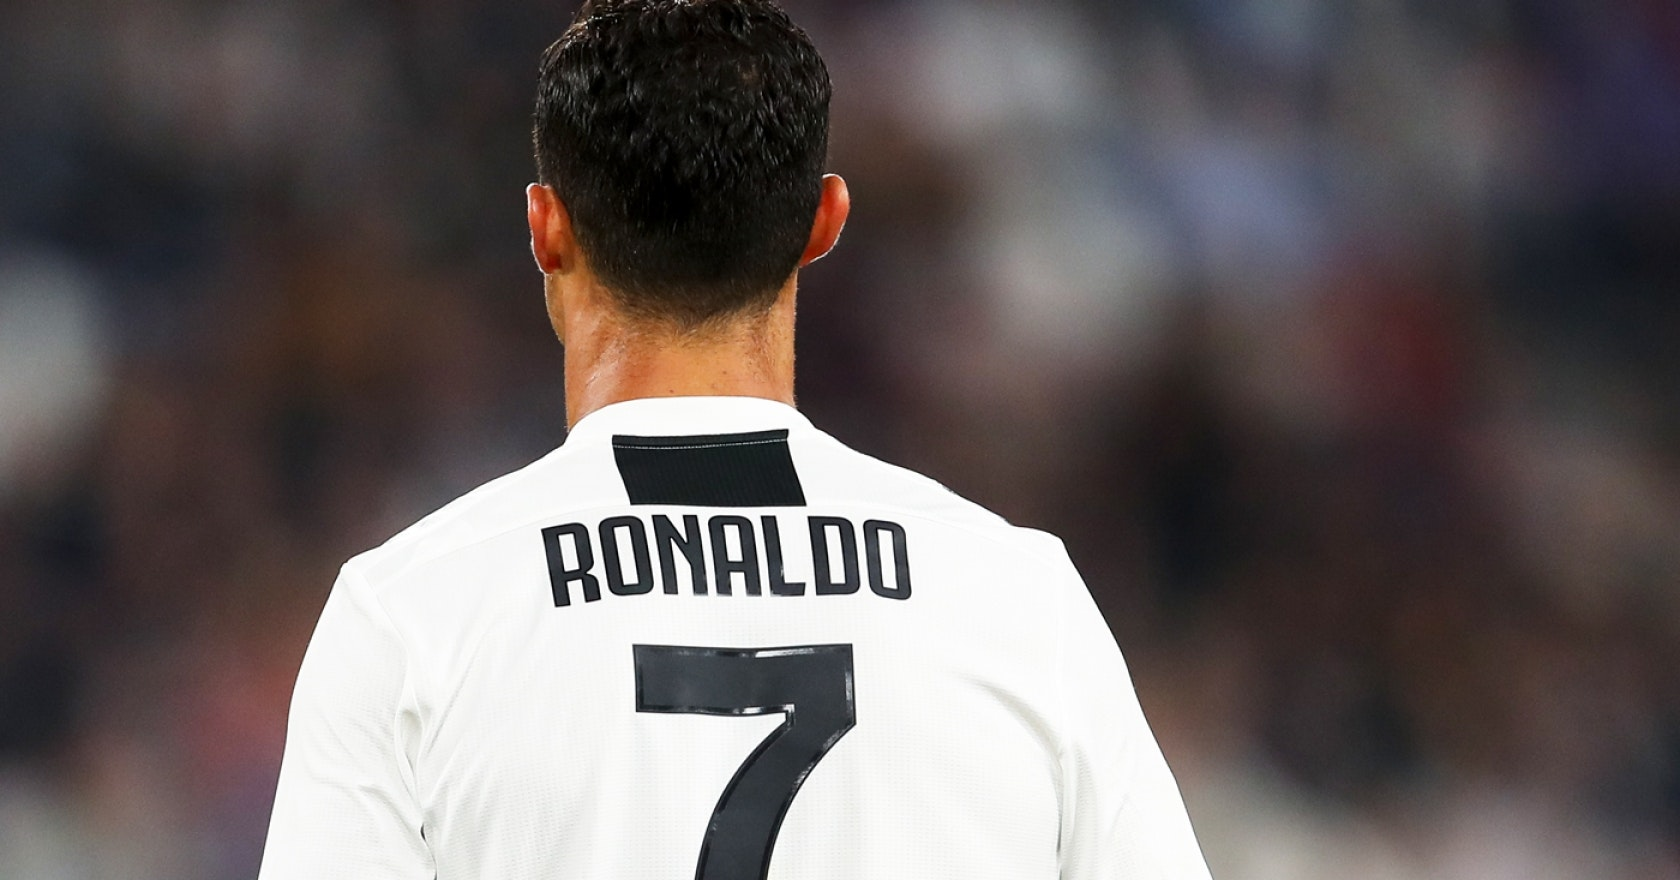 This response to the Cristiano Ronaldo rape allegation is deeply troubling